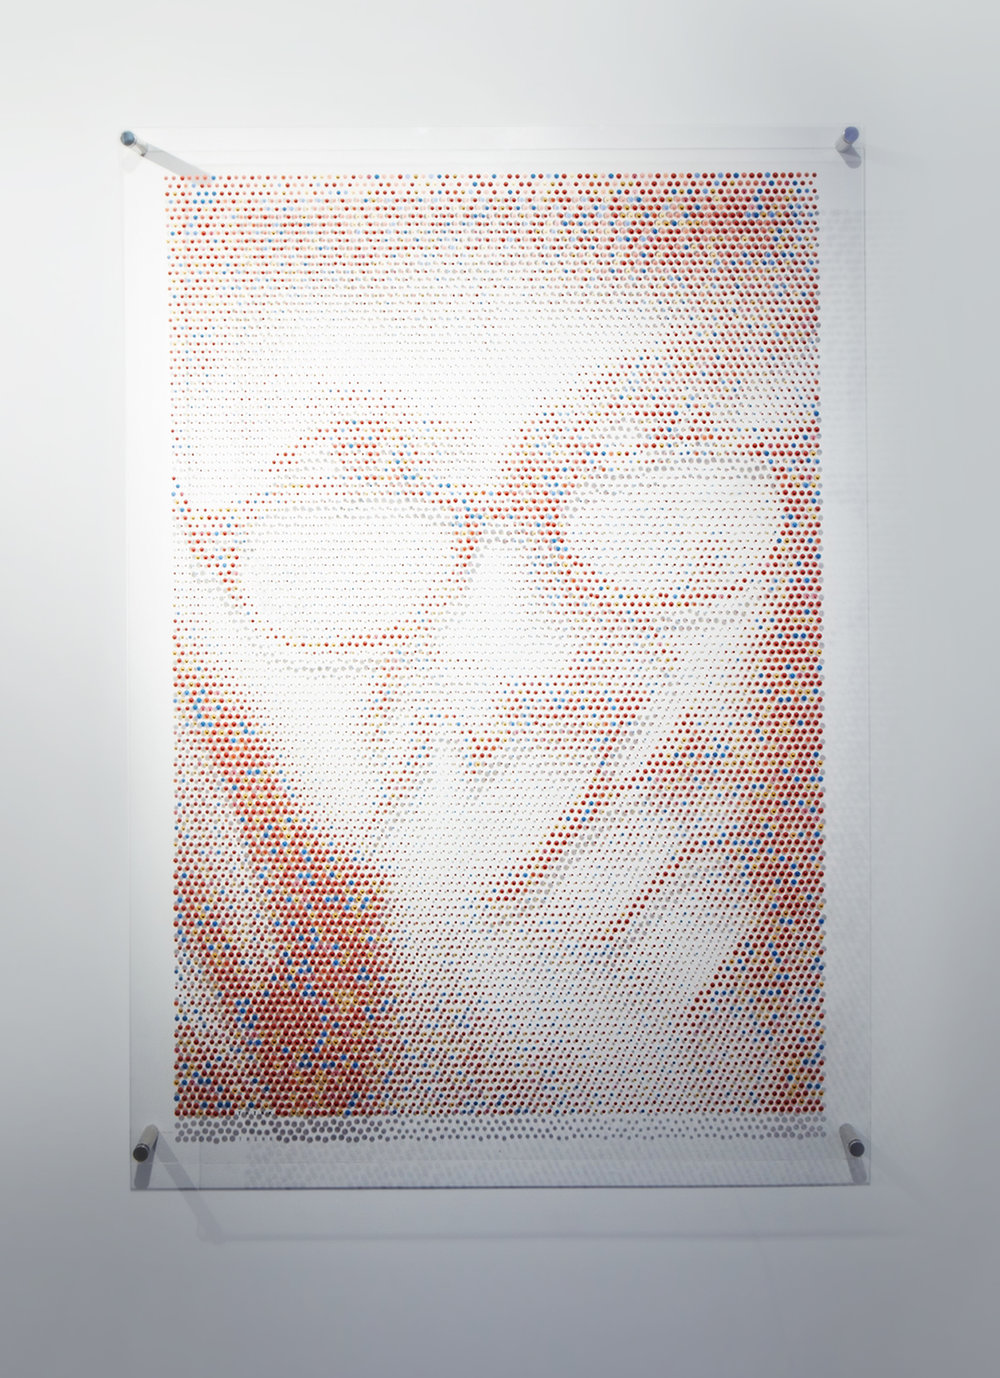 Paul Rand: Emoji Portrait Cadillac House, 2017